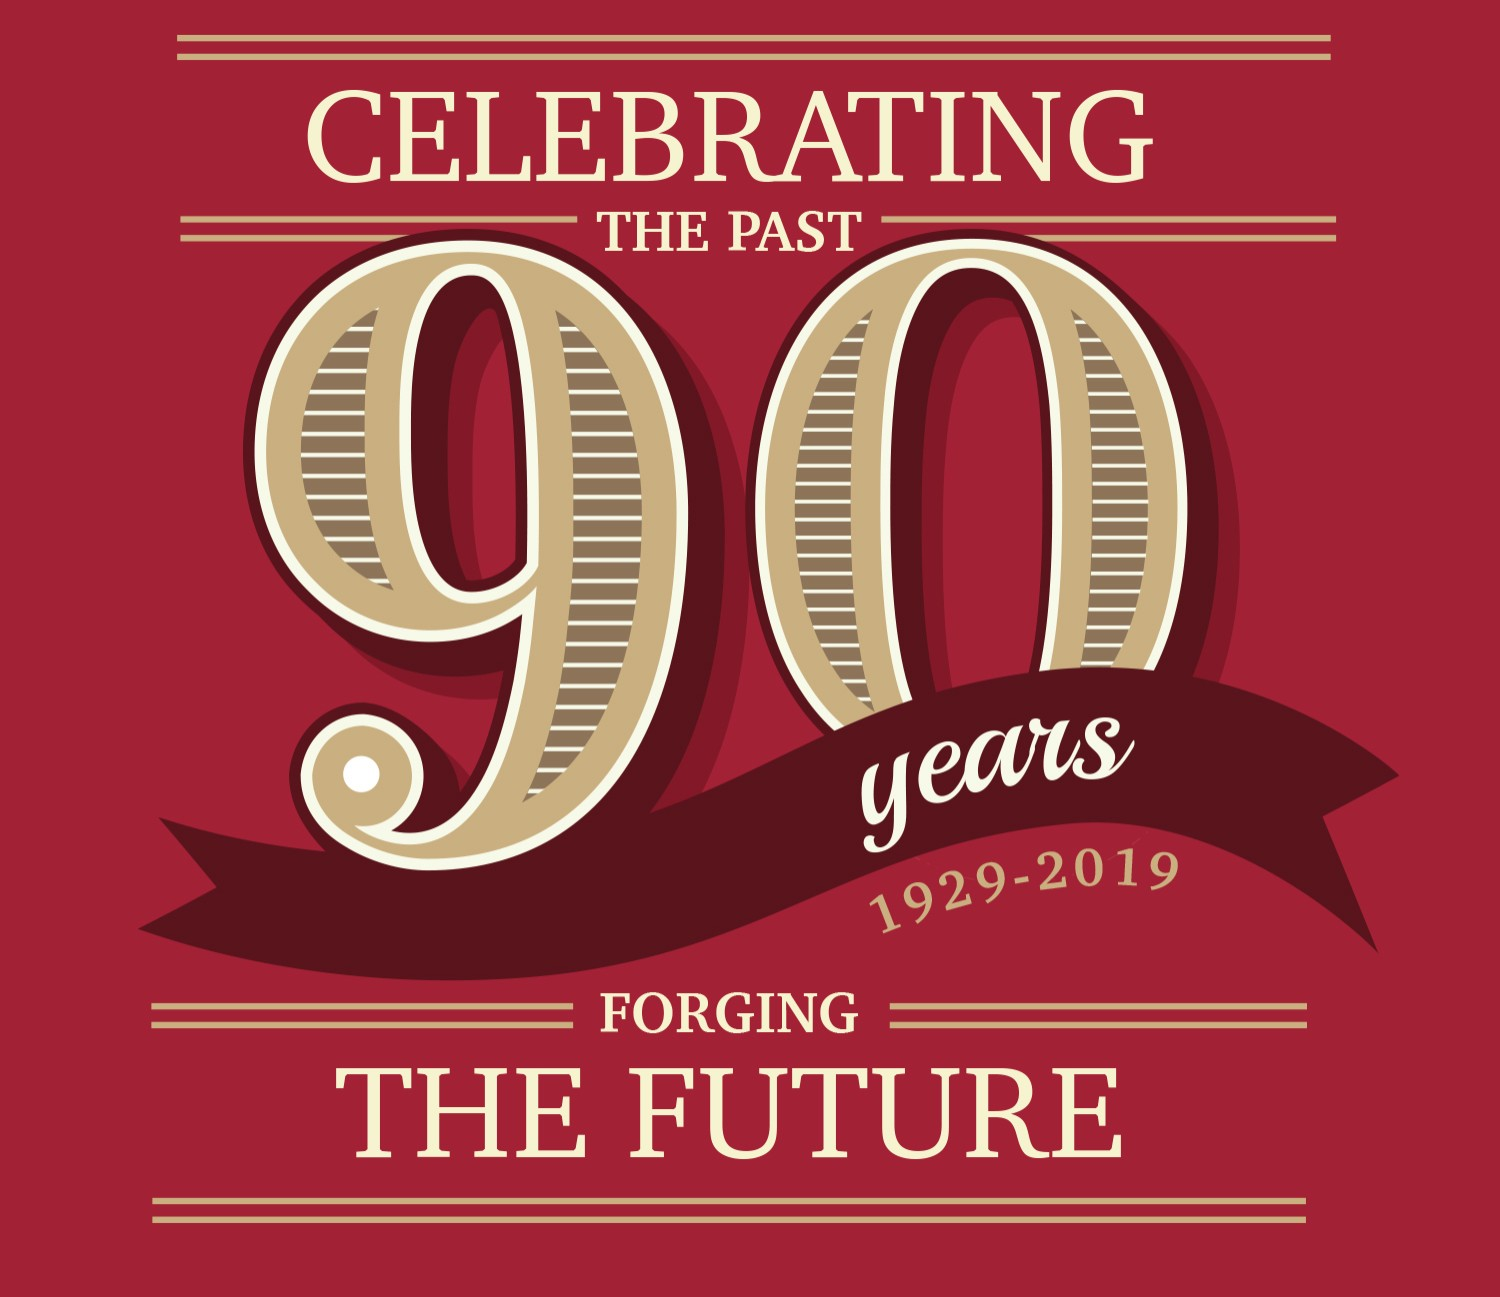 Celebrating the Past, Forging the Future 90 Years 1929-2019